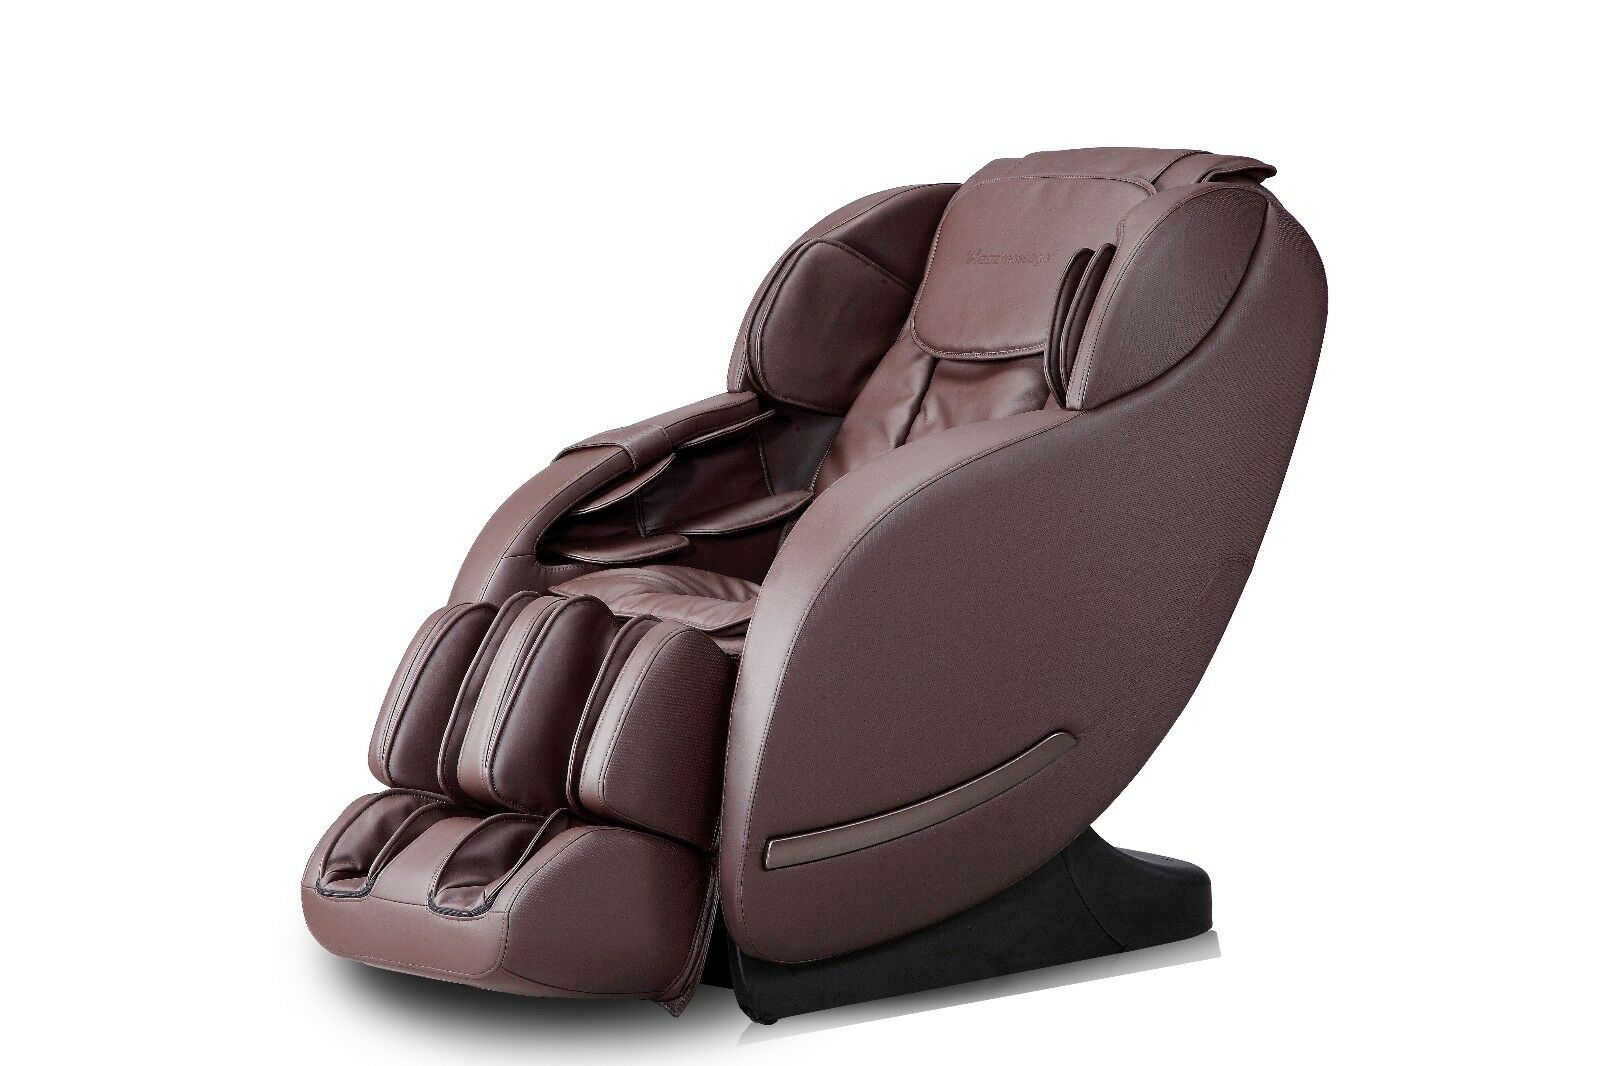 massage chair ebay. bestmassage electric full body massage chair foot roller zero gravity w/heat 190 brown | ebay ebay